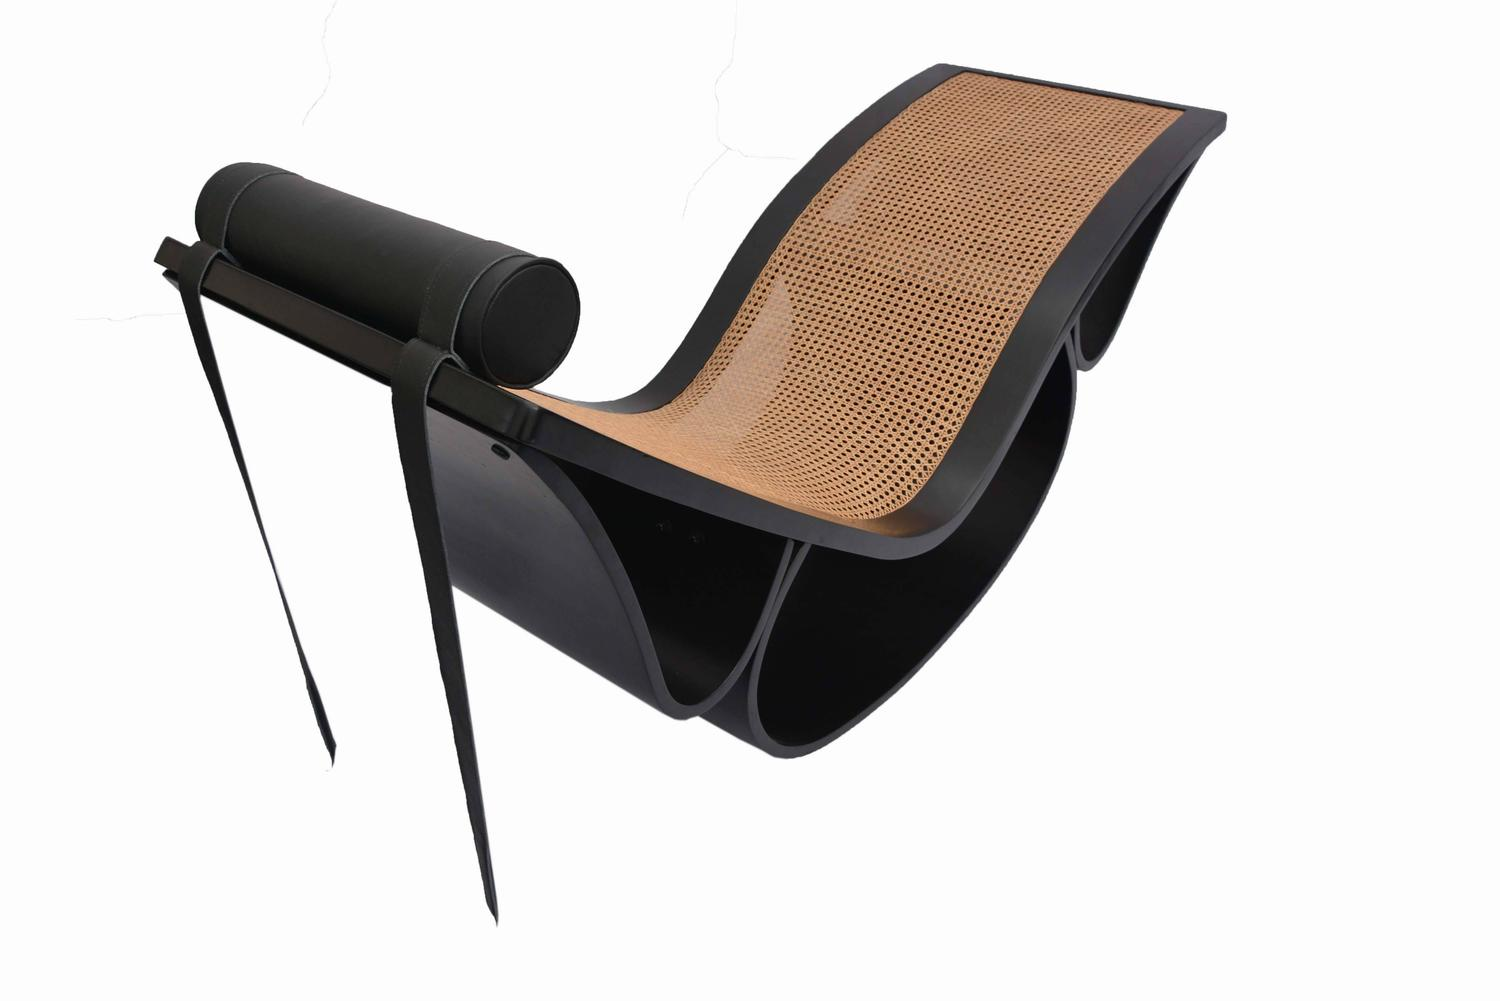 vintage rio chaise longue by oscar niemeyer for sale at